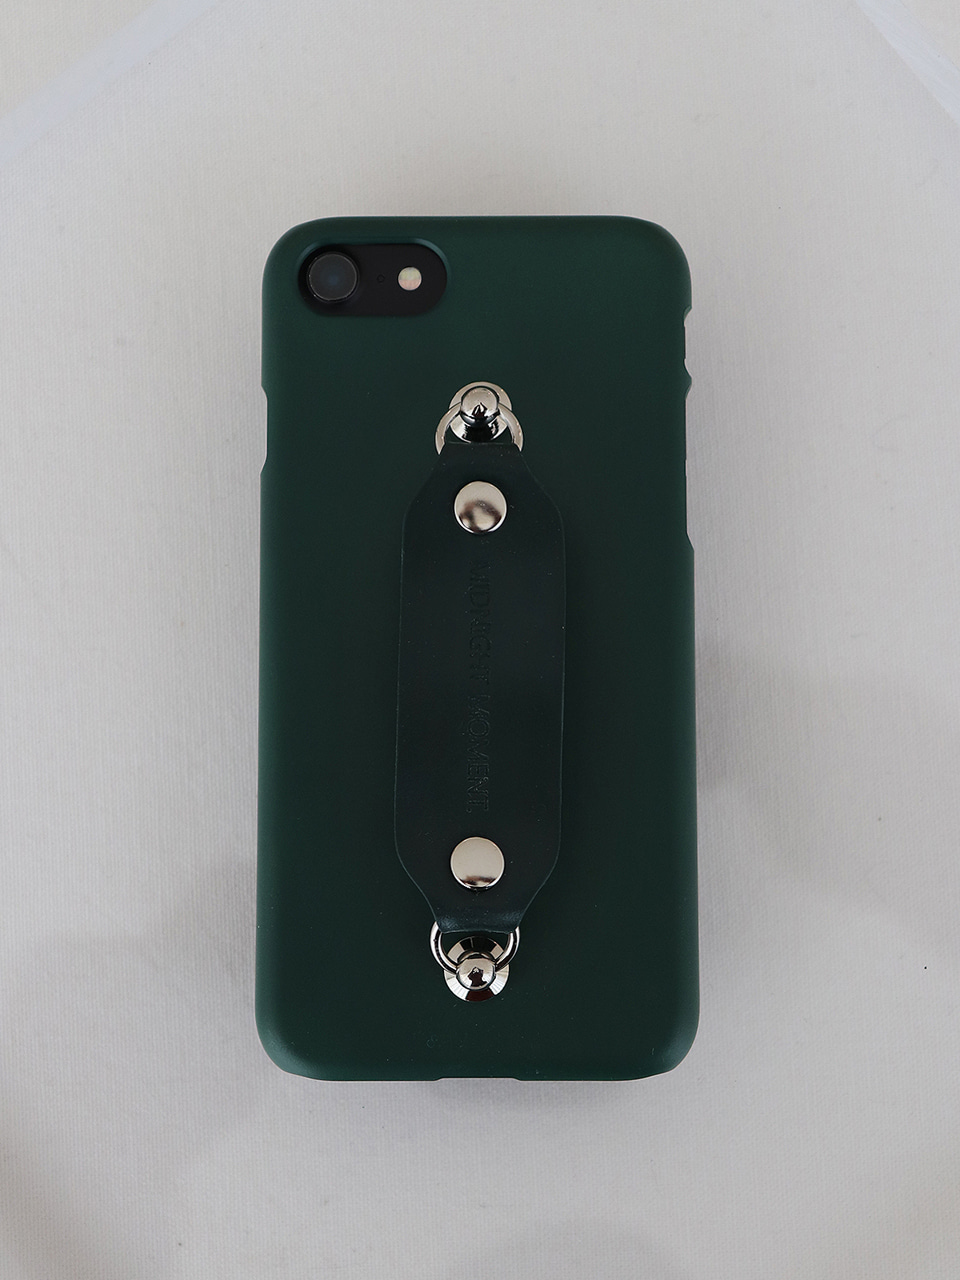 leather grip case deepgreen - deepgreen